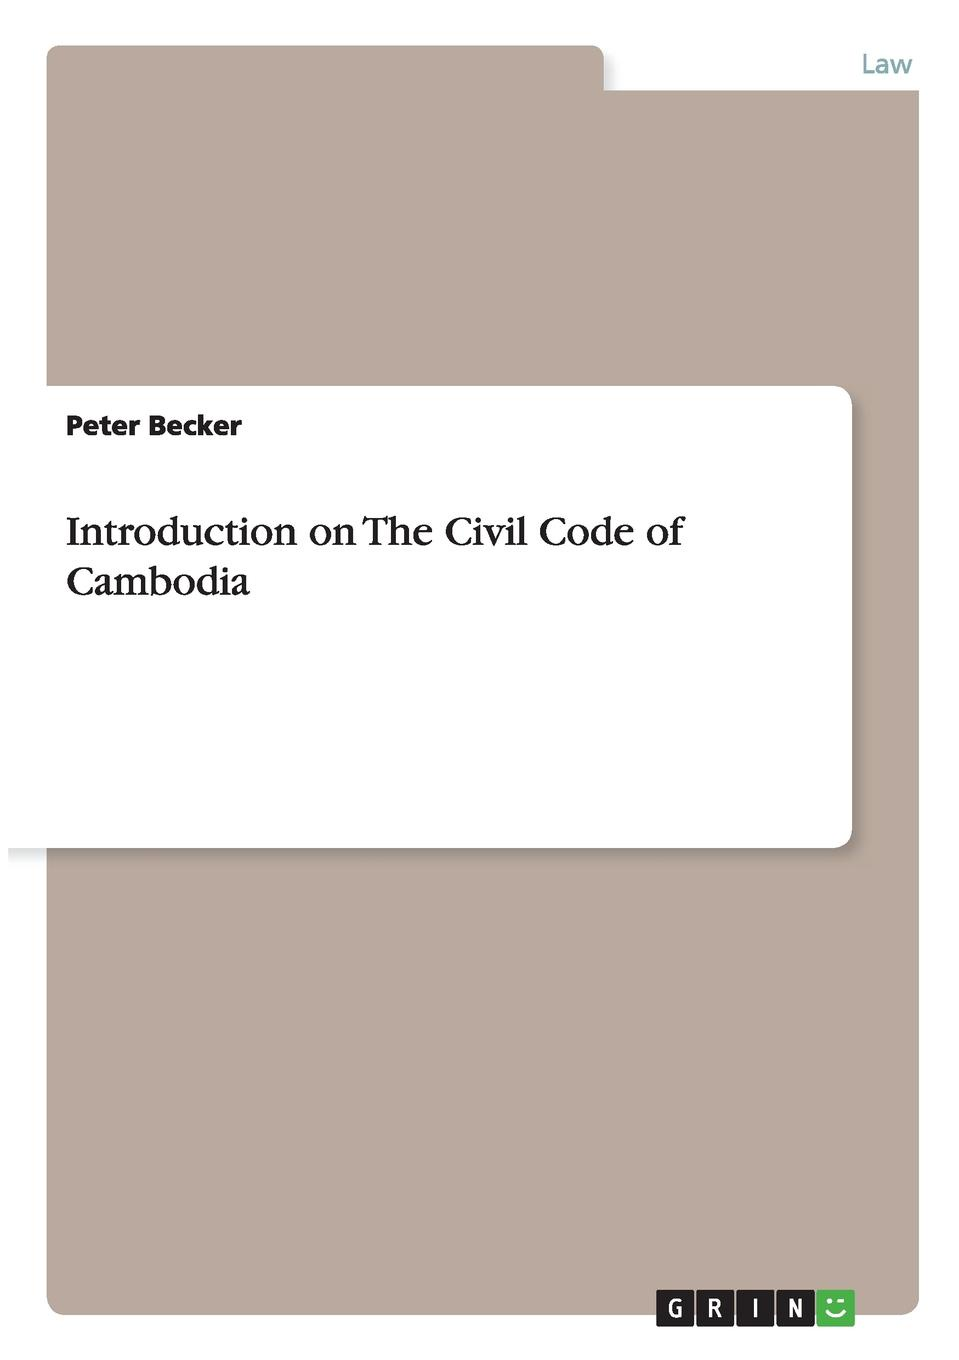 Peter Becker Introduction on The Civil Code of Cambodia edited by alison dunn the voluntary sector the state and the law